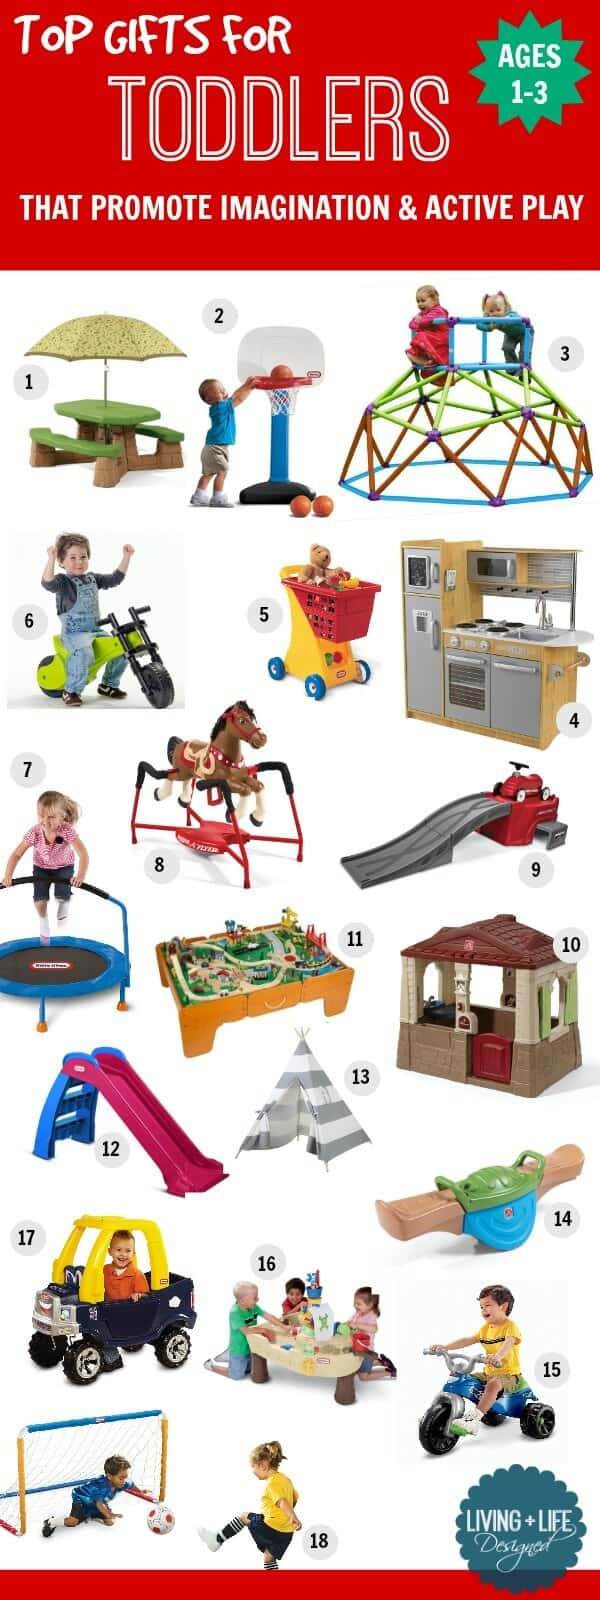 Toys For Toddlers One To Three Years : Gifts for toddlers years old that promote imagination